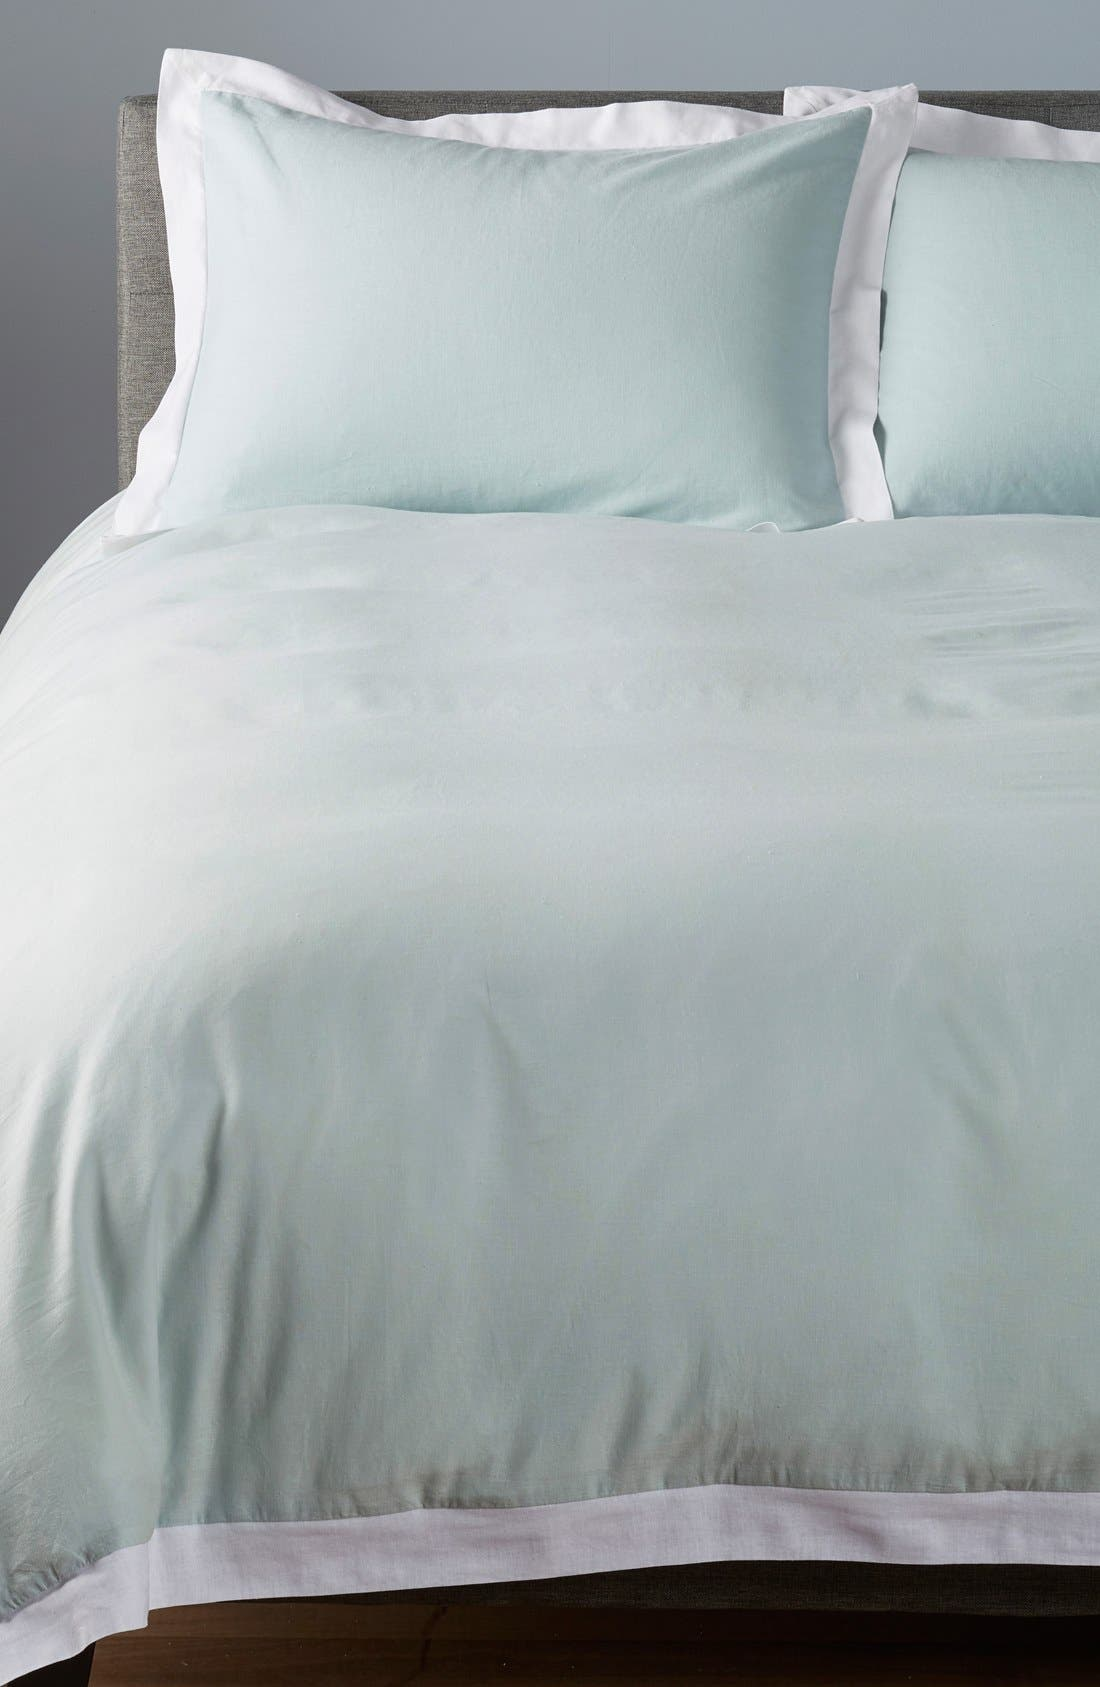 Levtex 'Spa' Washed Linen Duvet Cover